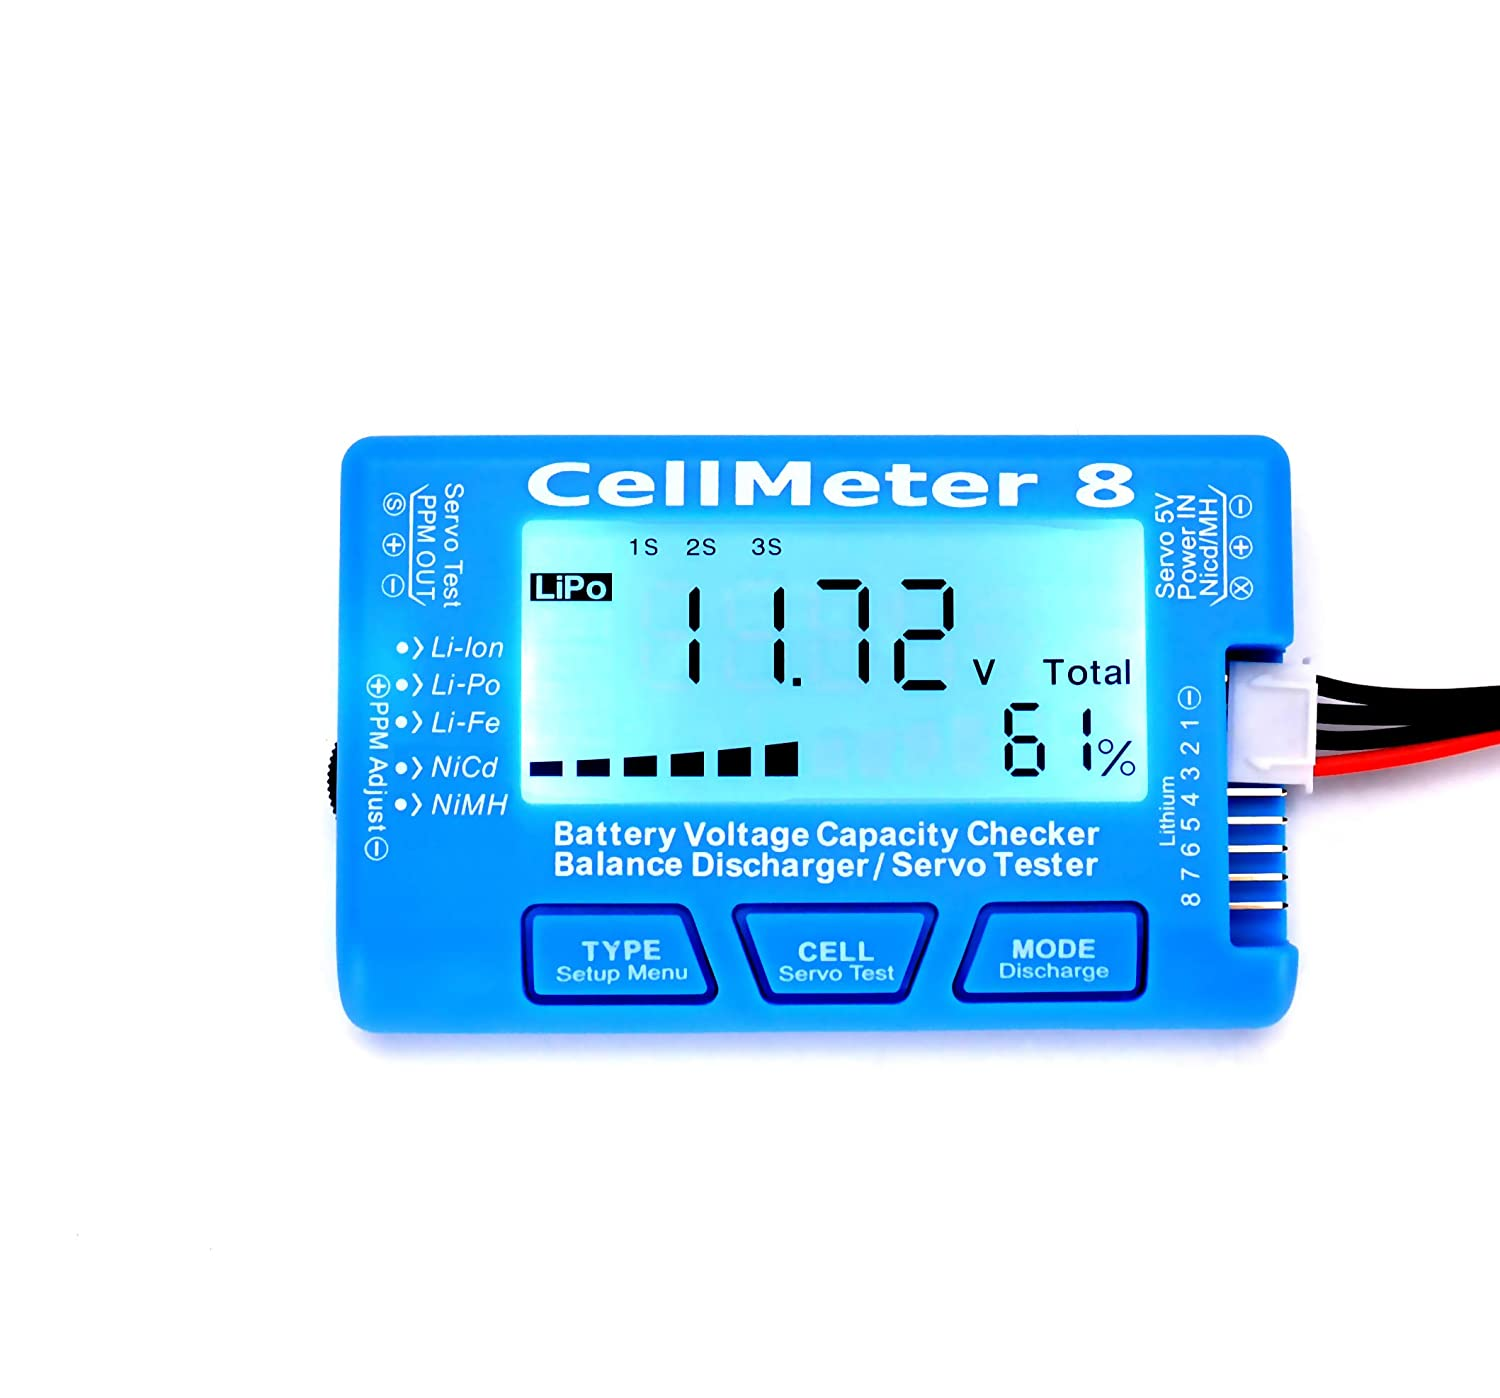 Rc Cellmeter 8 Digital Battery Capacity Checker Balance Lipo Balancer Circuit Discharger Servo Tester Lcd Backlight For Life Li Ion Nimh Nicd Toys Games